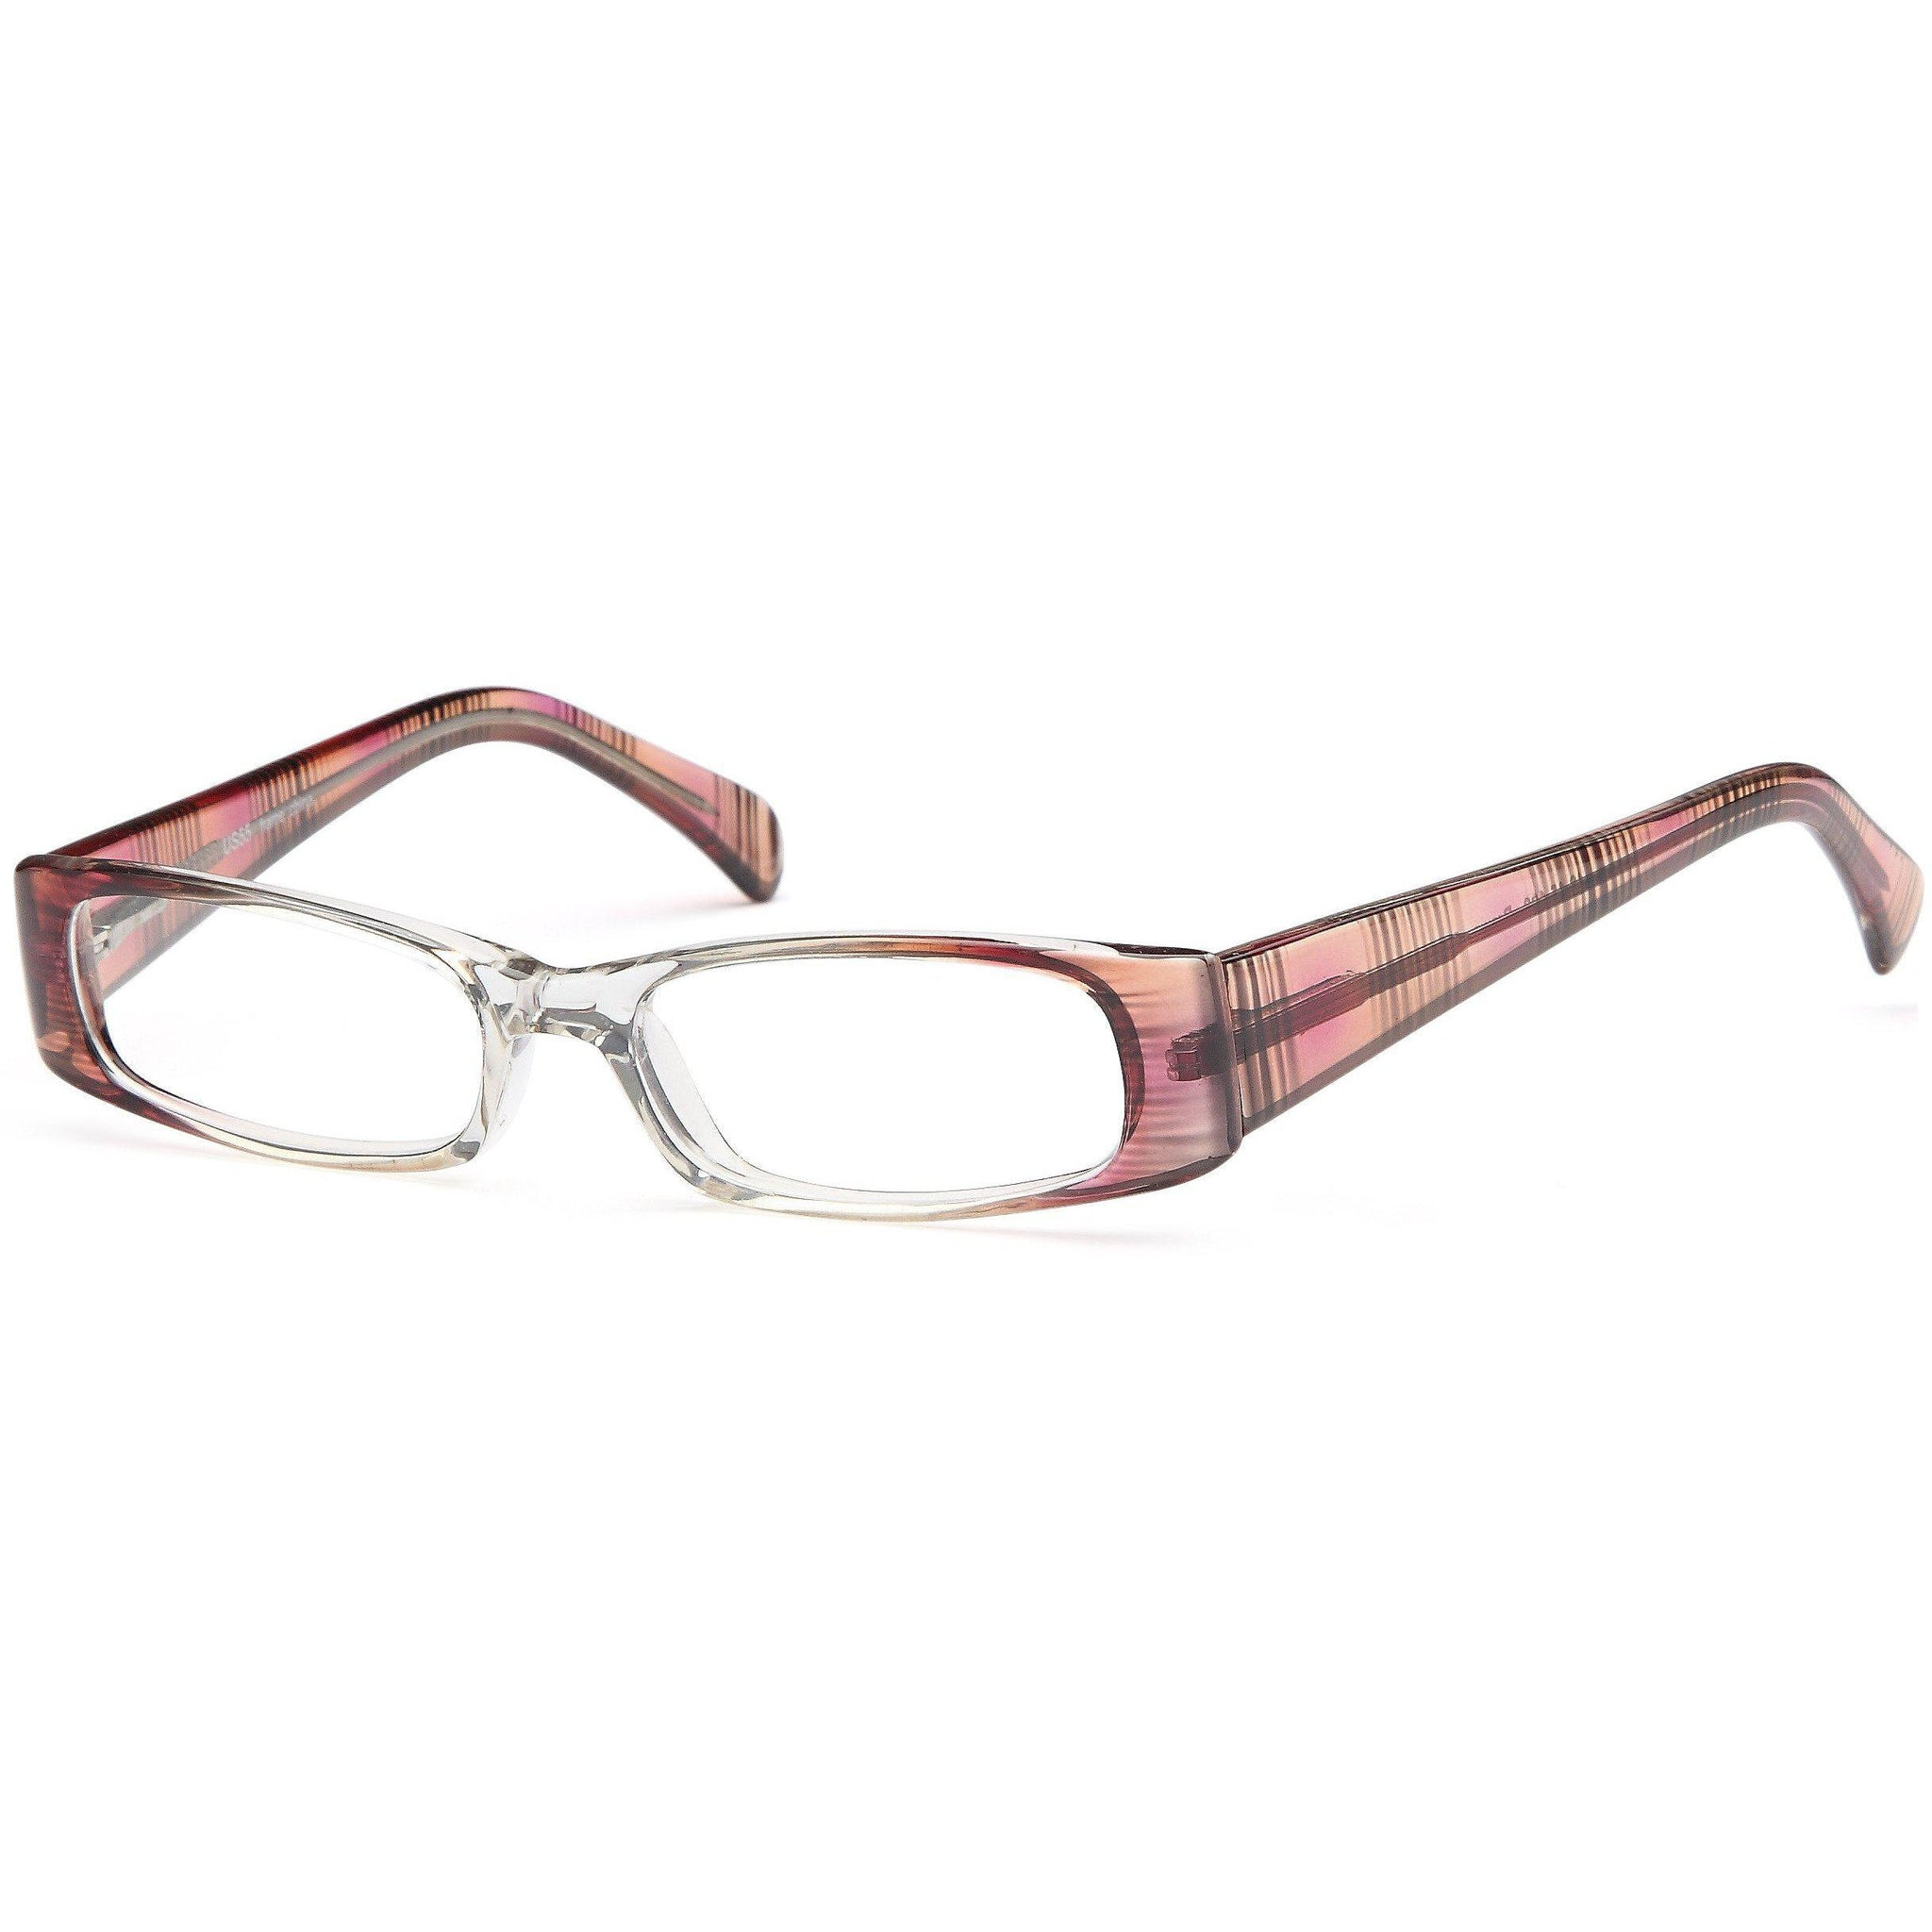 4U Prescription Glasses US 55 Optical Eyeglasses Frame - timetoshade